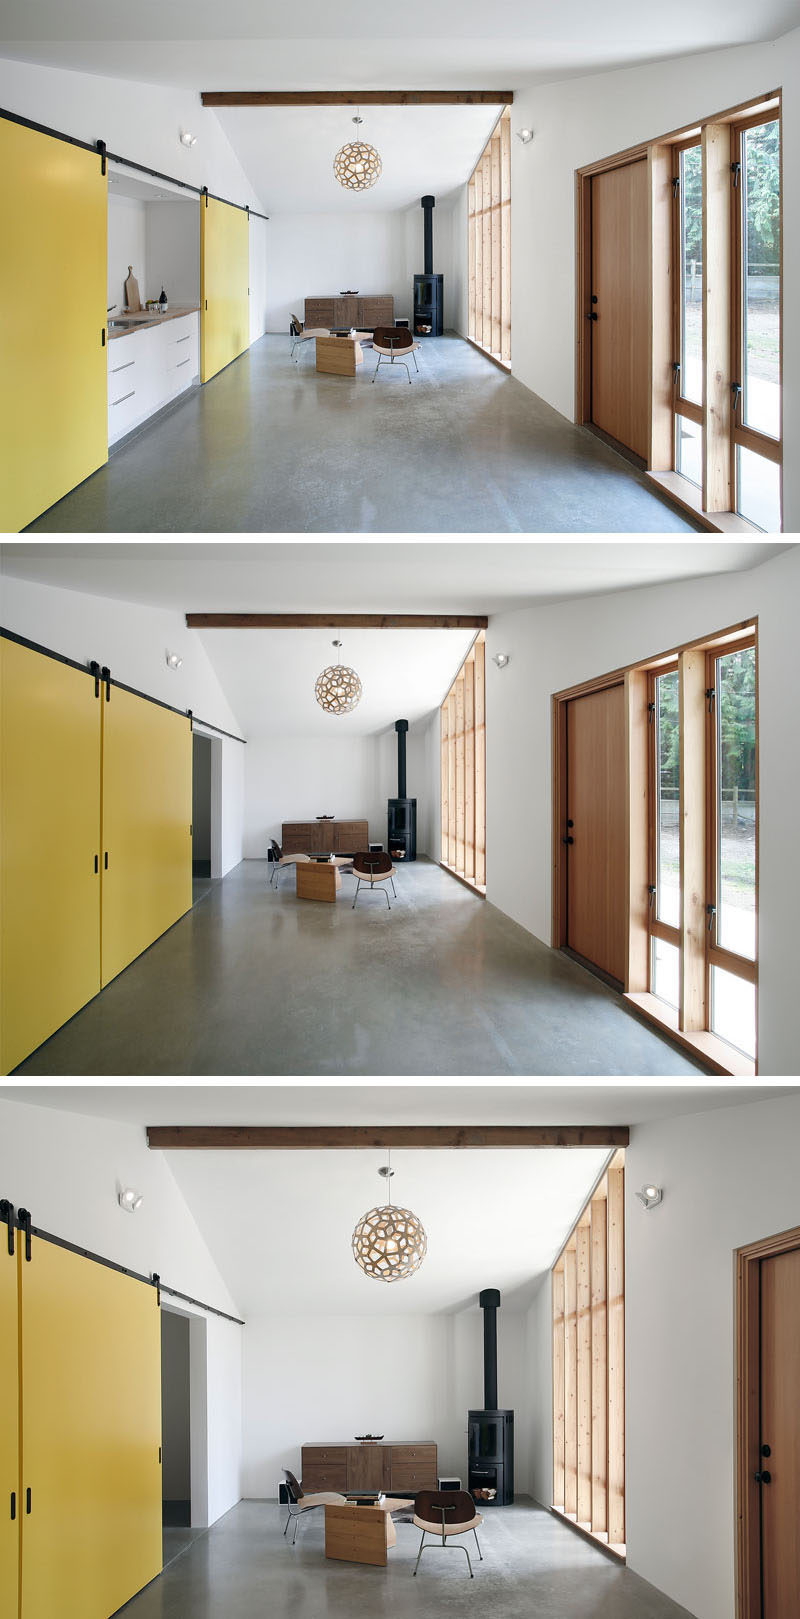 Fun, bright yellow sliding barn doors run the length of this small home and conceal the bedroom and the kitchen, as well as adding a pop of color to the simple interior.